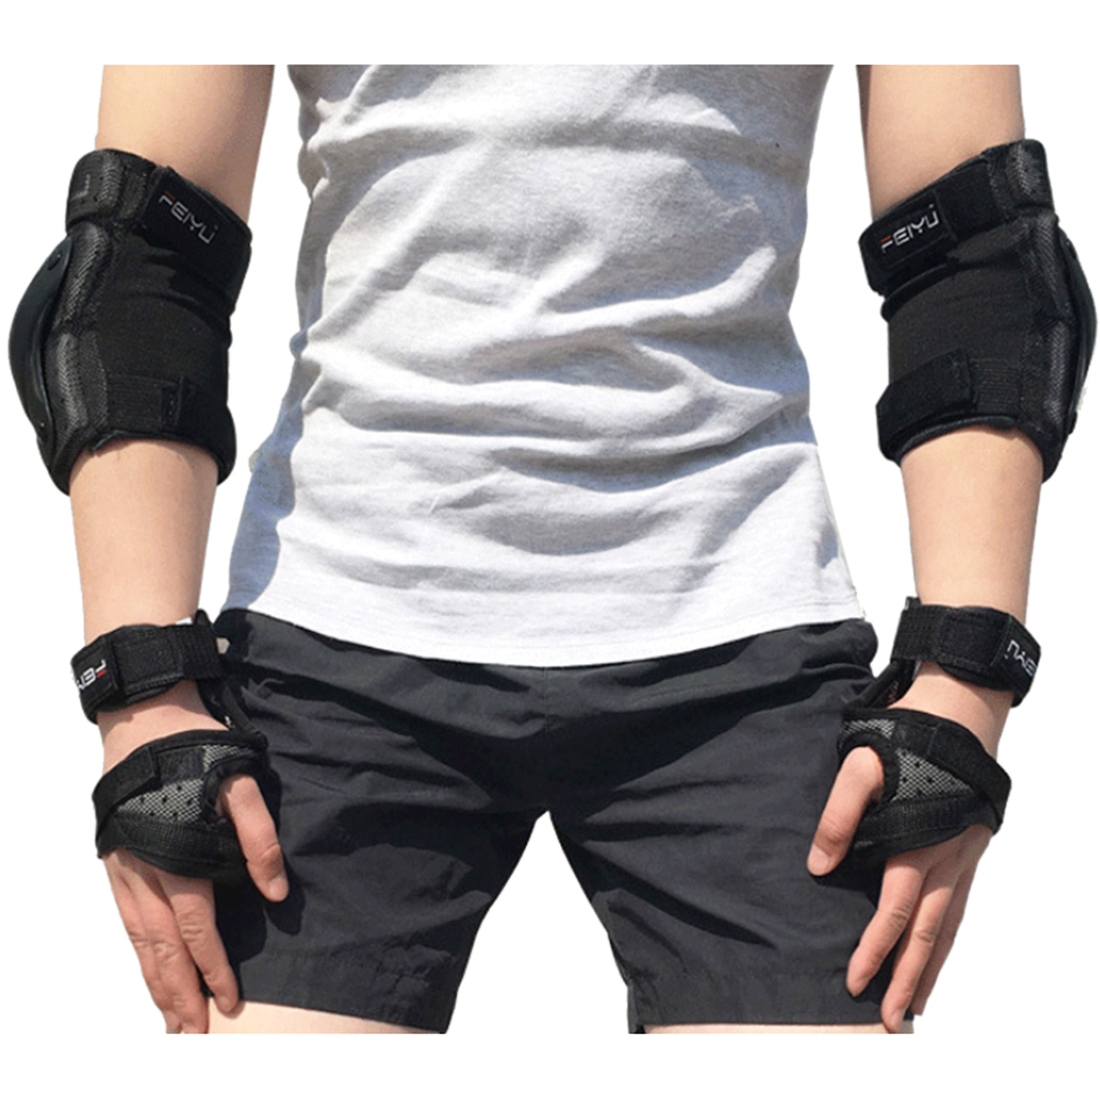 iguardor 6Pcs Children Sport Safety Protective Body Gear Set for Skating Bicycling Joint Protection - Black XS-XL